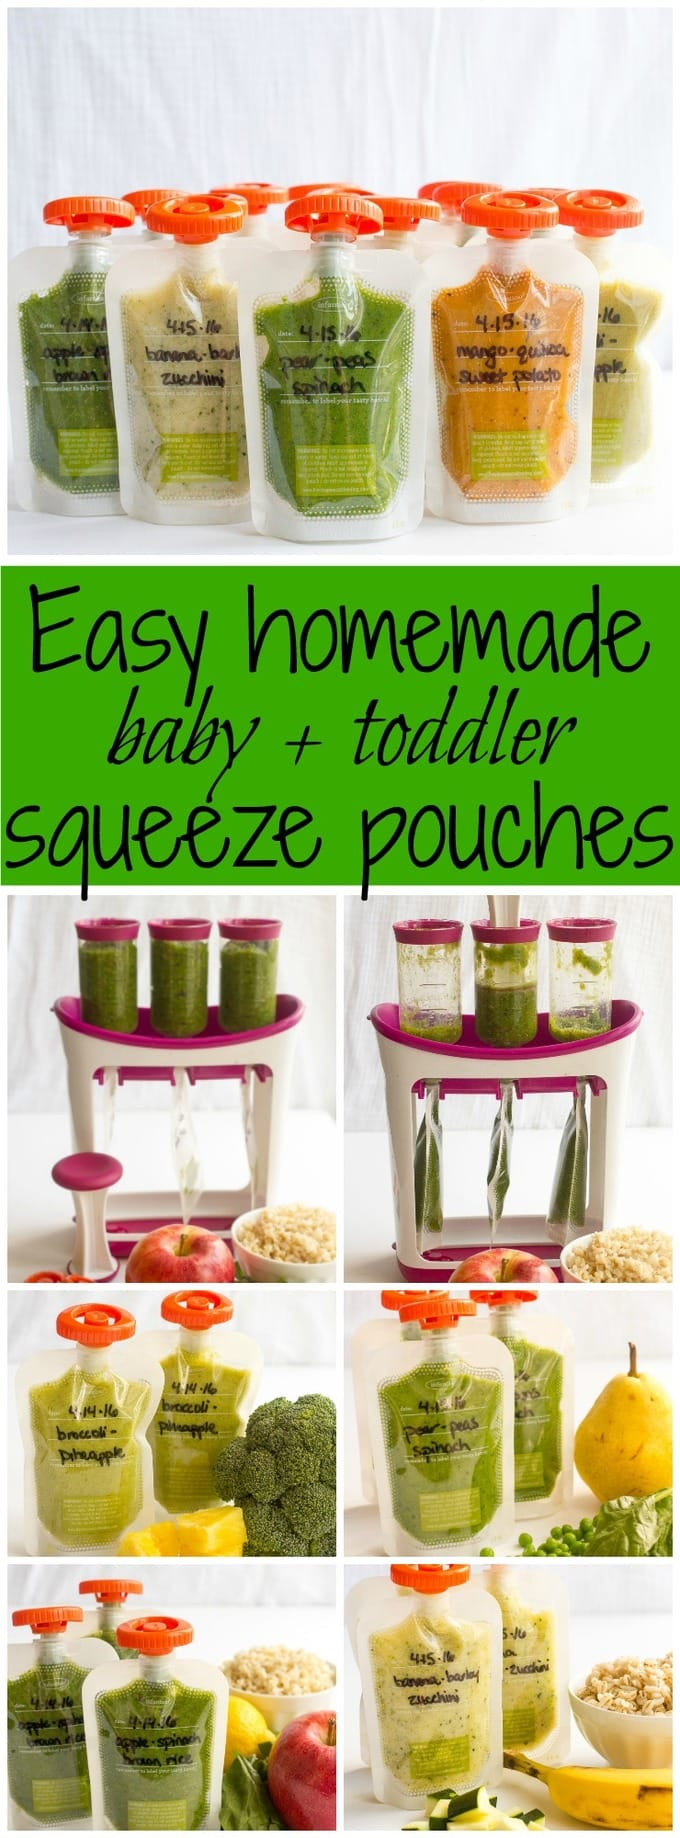 Best ideas about DIY Baby Food Pouch . Save or Pin Homemade baby food pouches how to and 5 recipes Family Now.